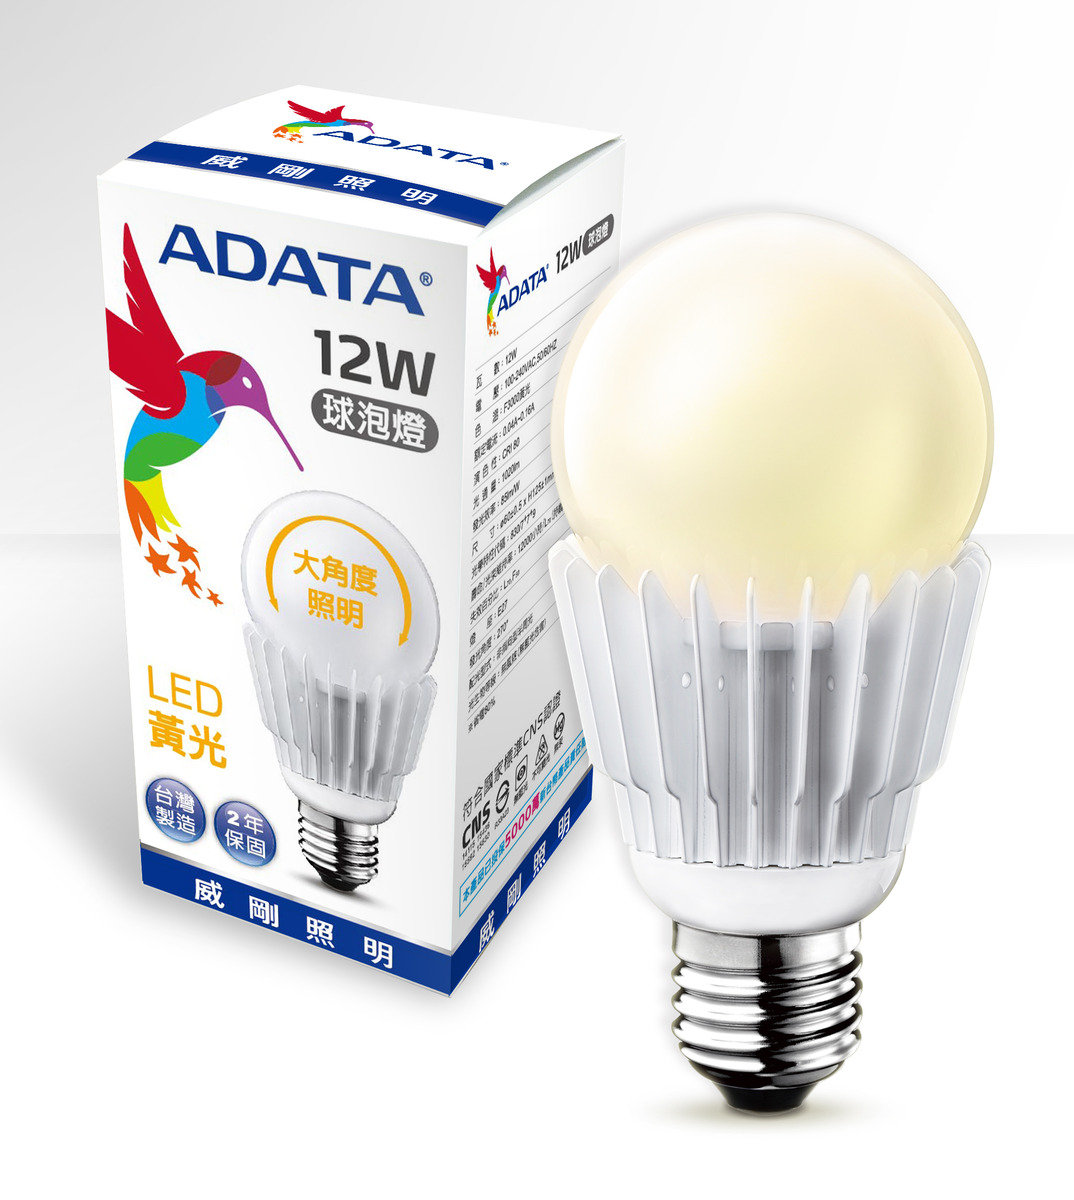 ADATA LED Bulb 12W 3000K Warm White